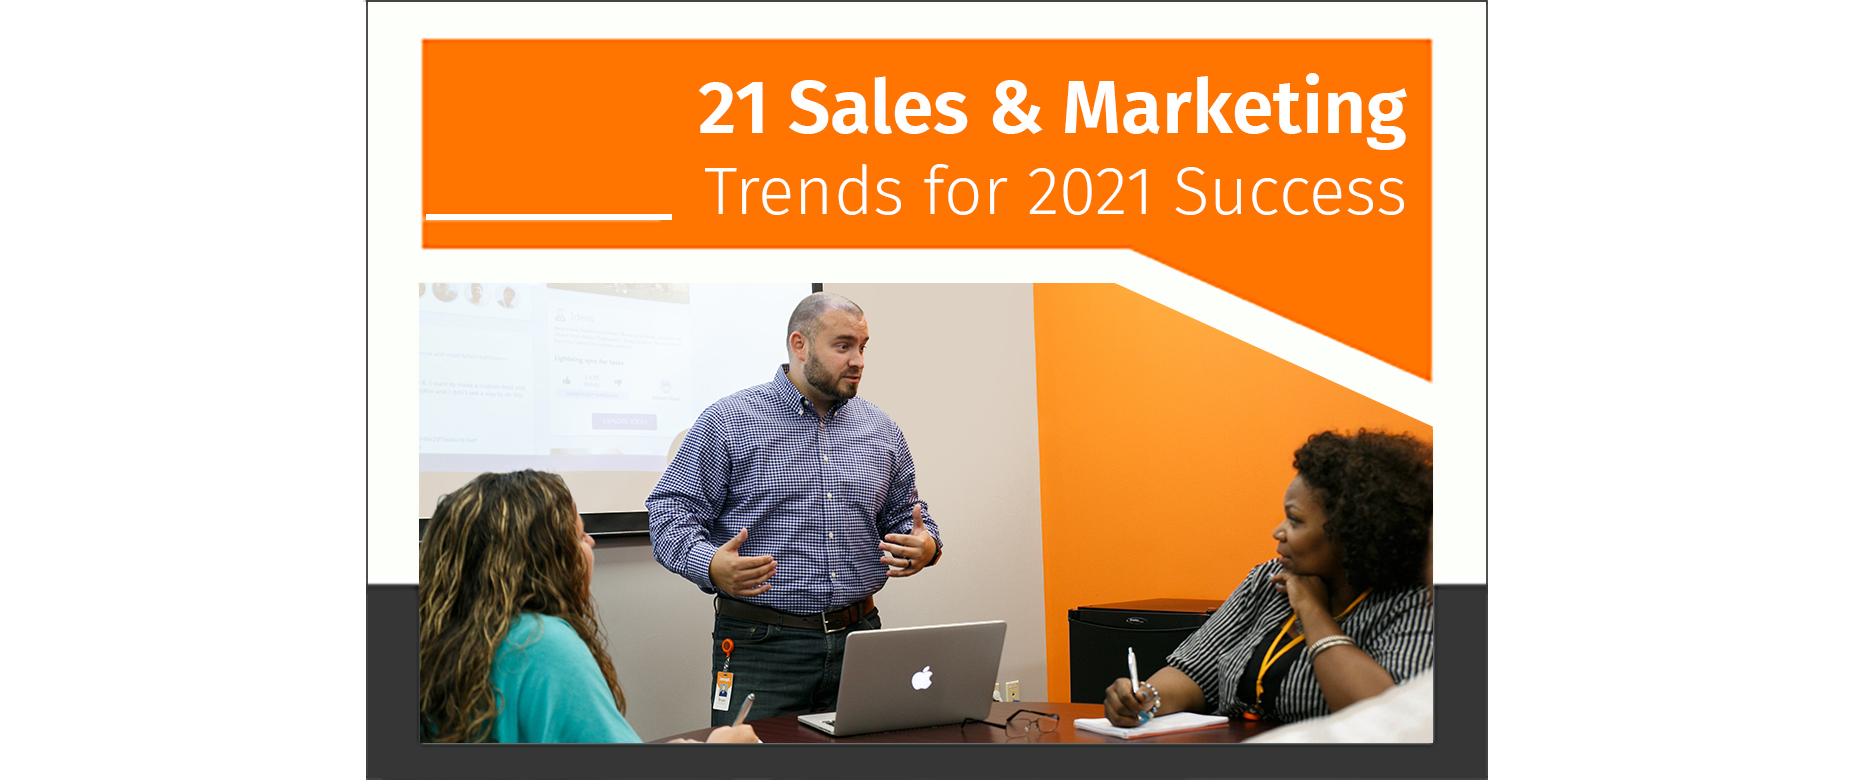 Check out these sales and marketing trends for success in 2021